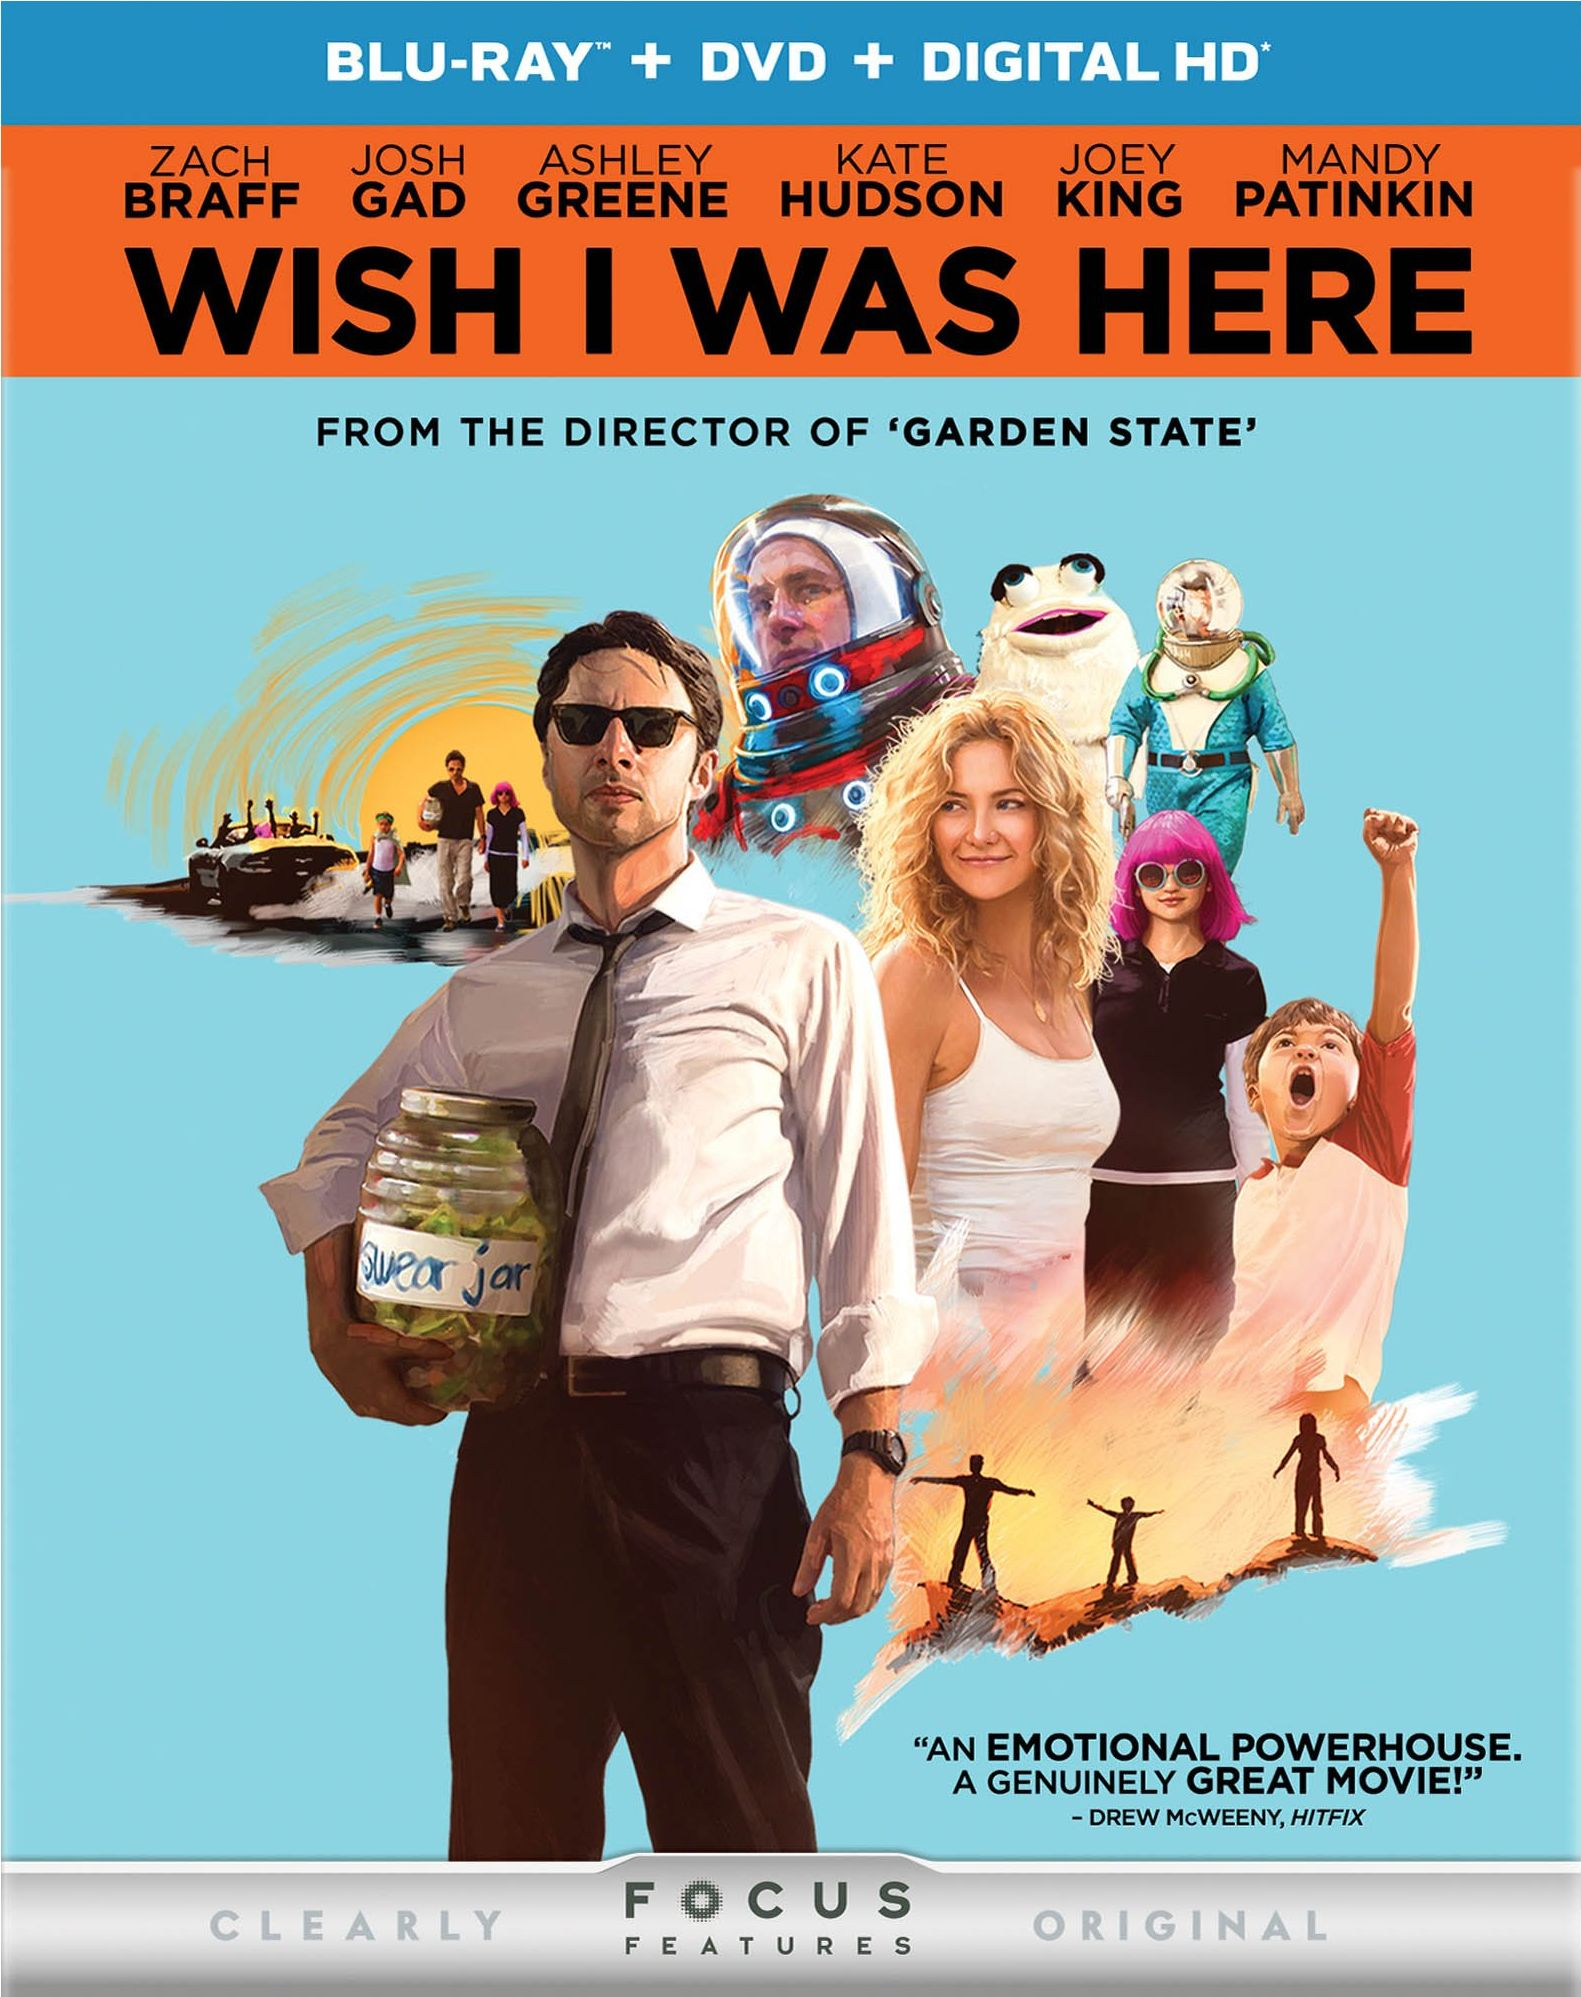 Wish I Was Here Blu-ray Review